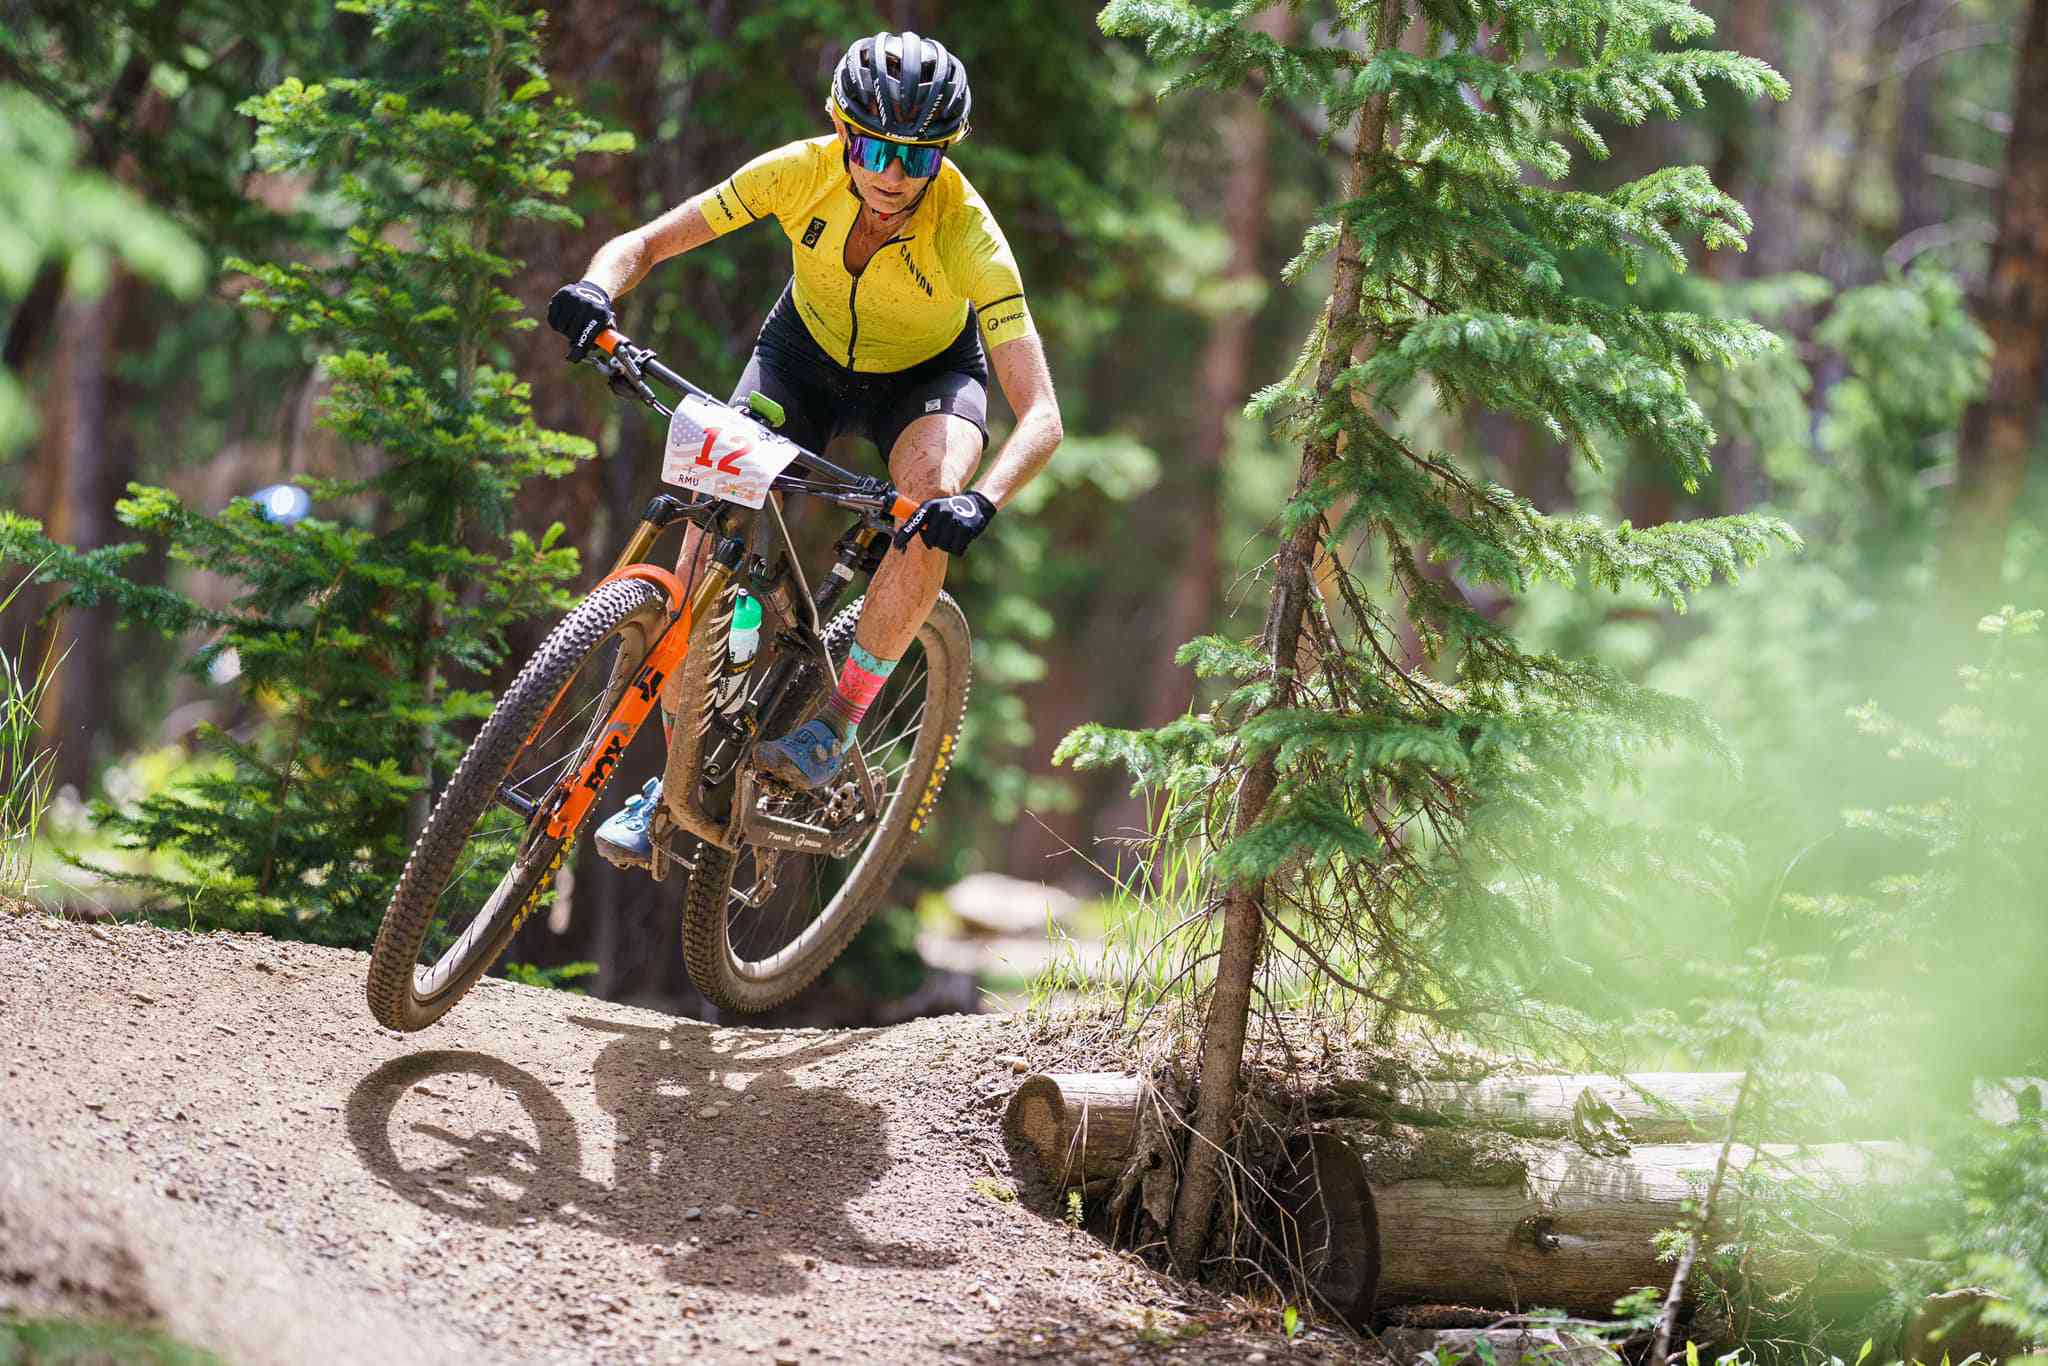 Professional mountain biker displays the proper body position on a downhill turn